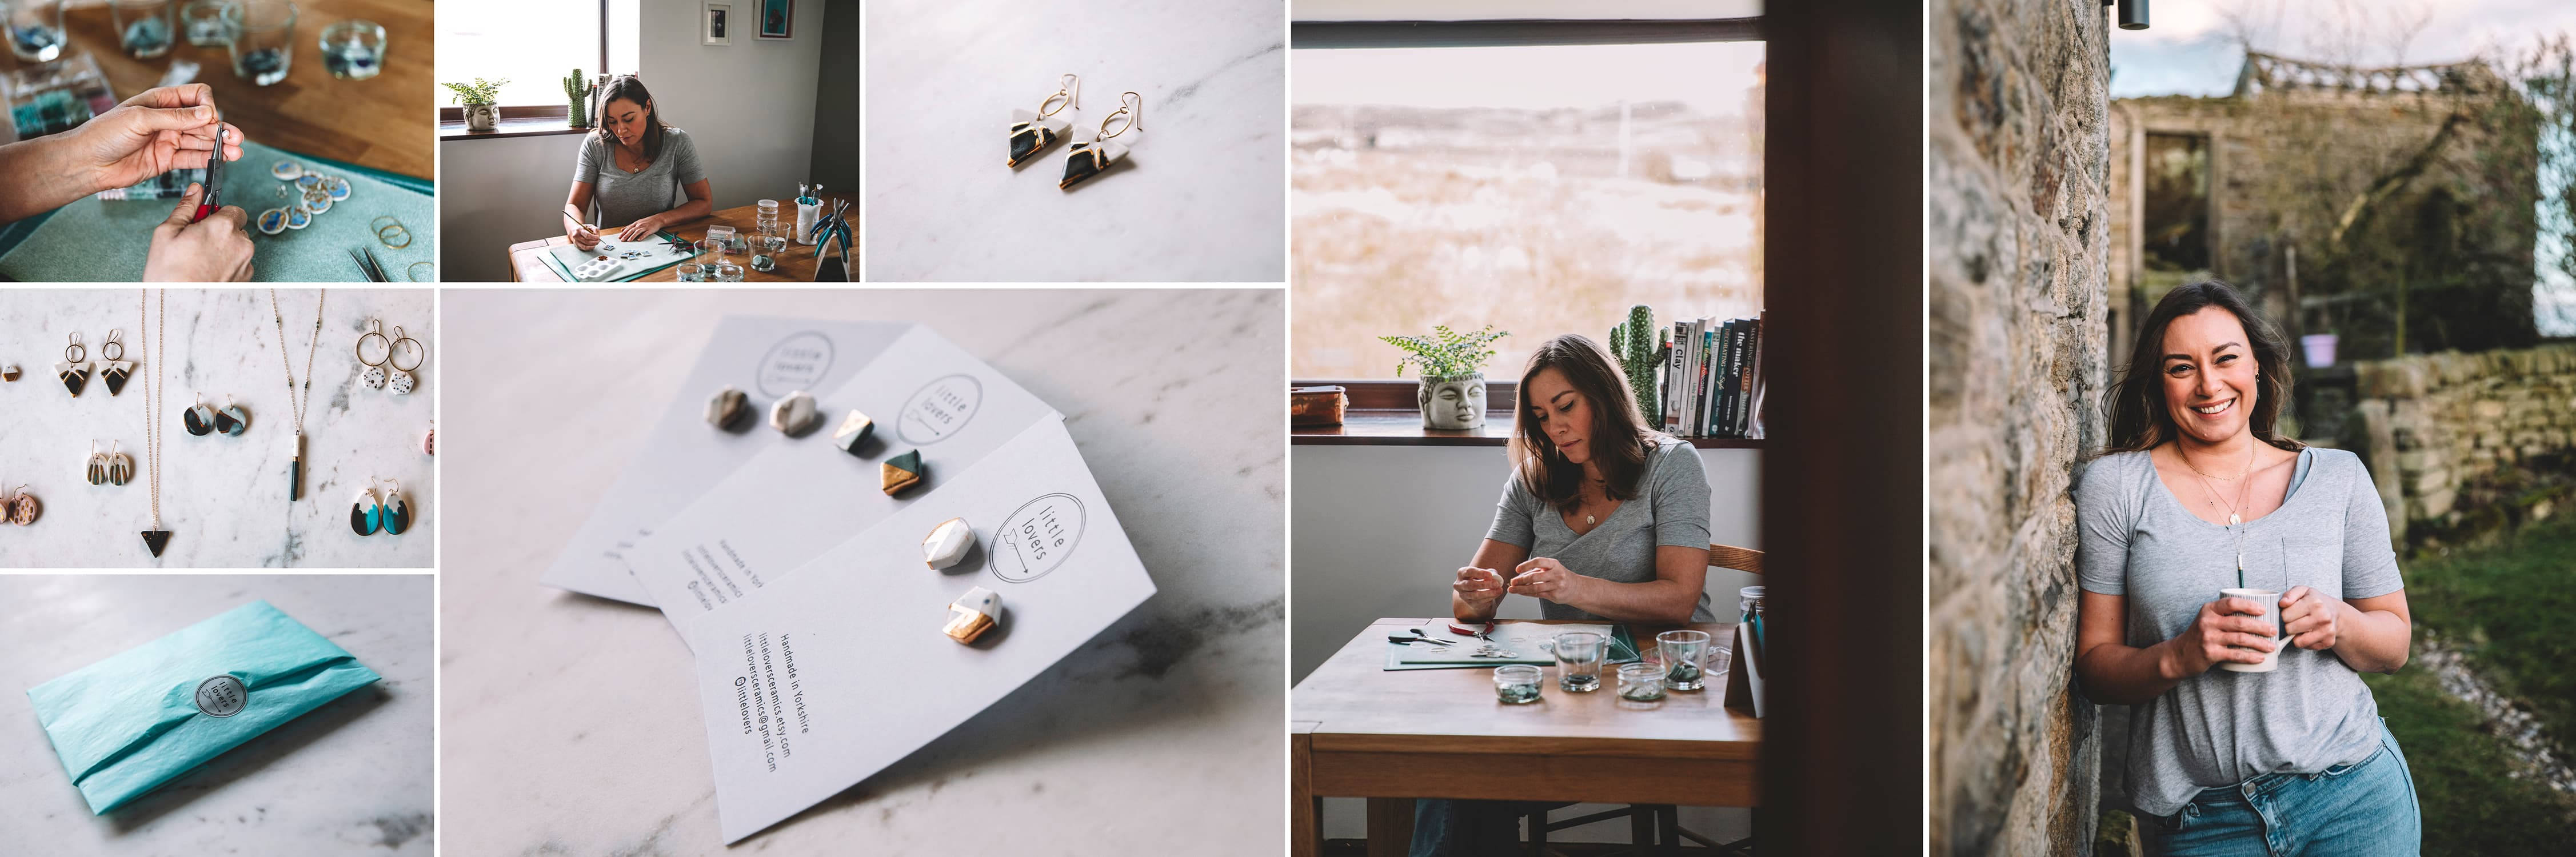 jewellery-maker-branding-photography